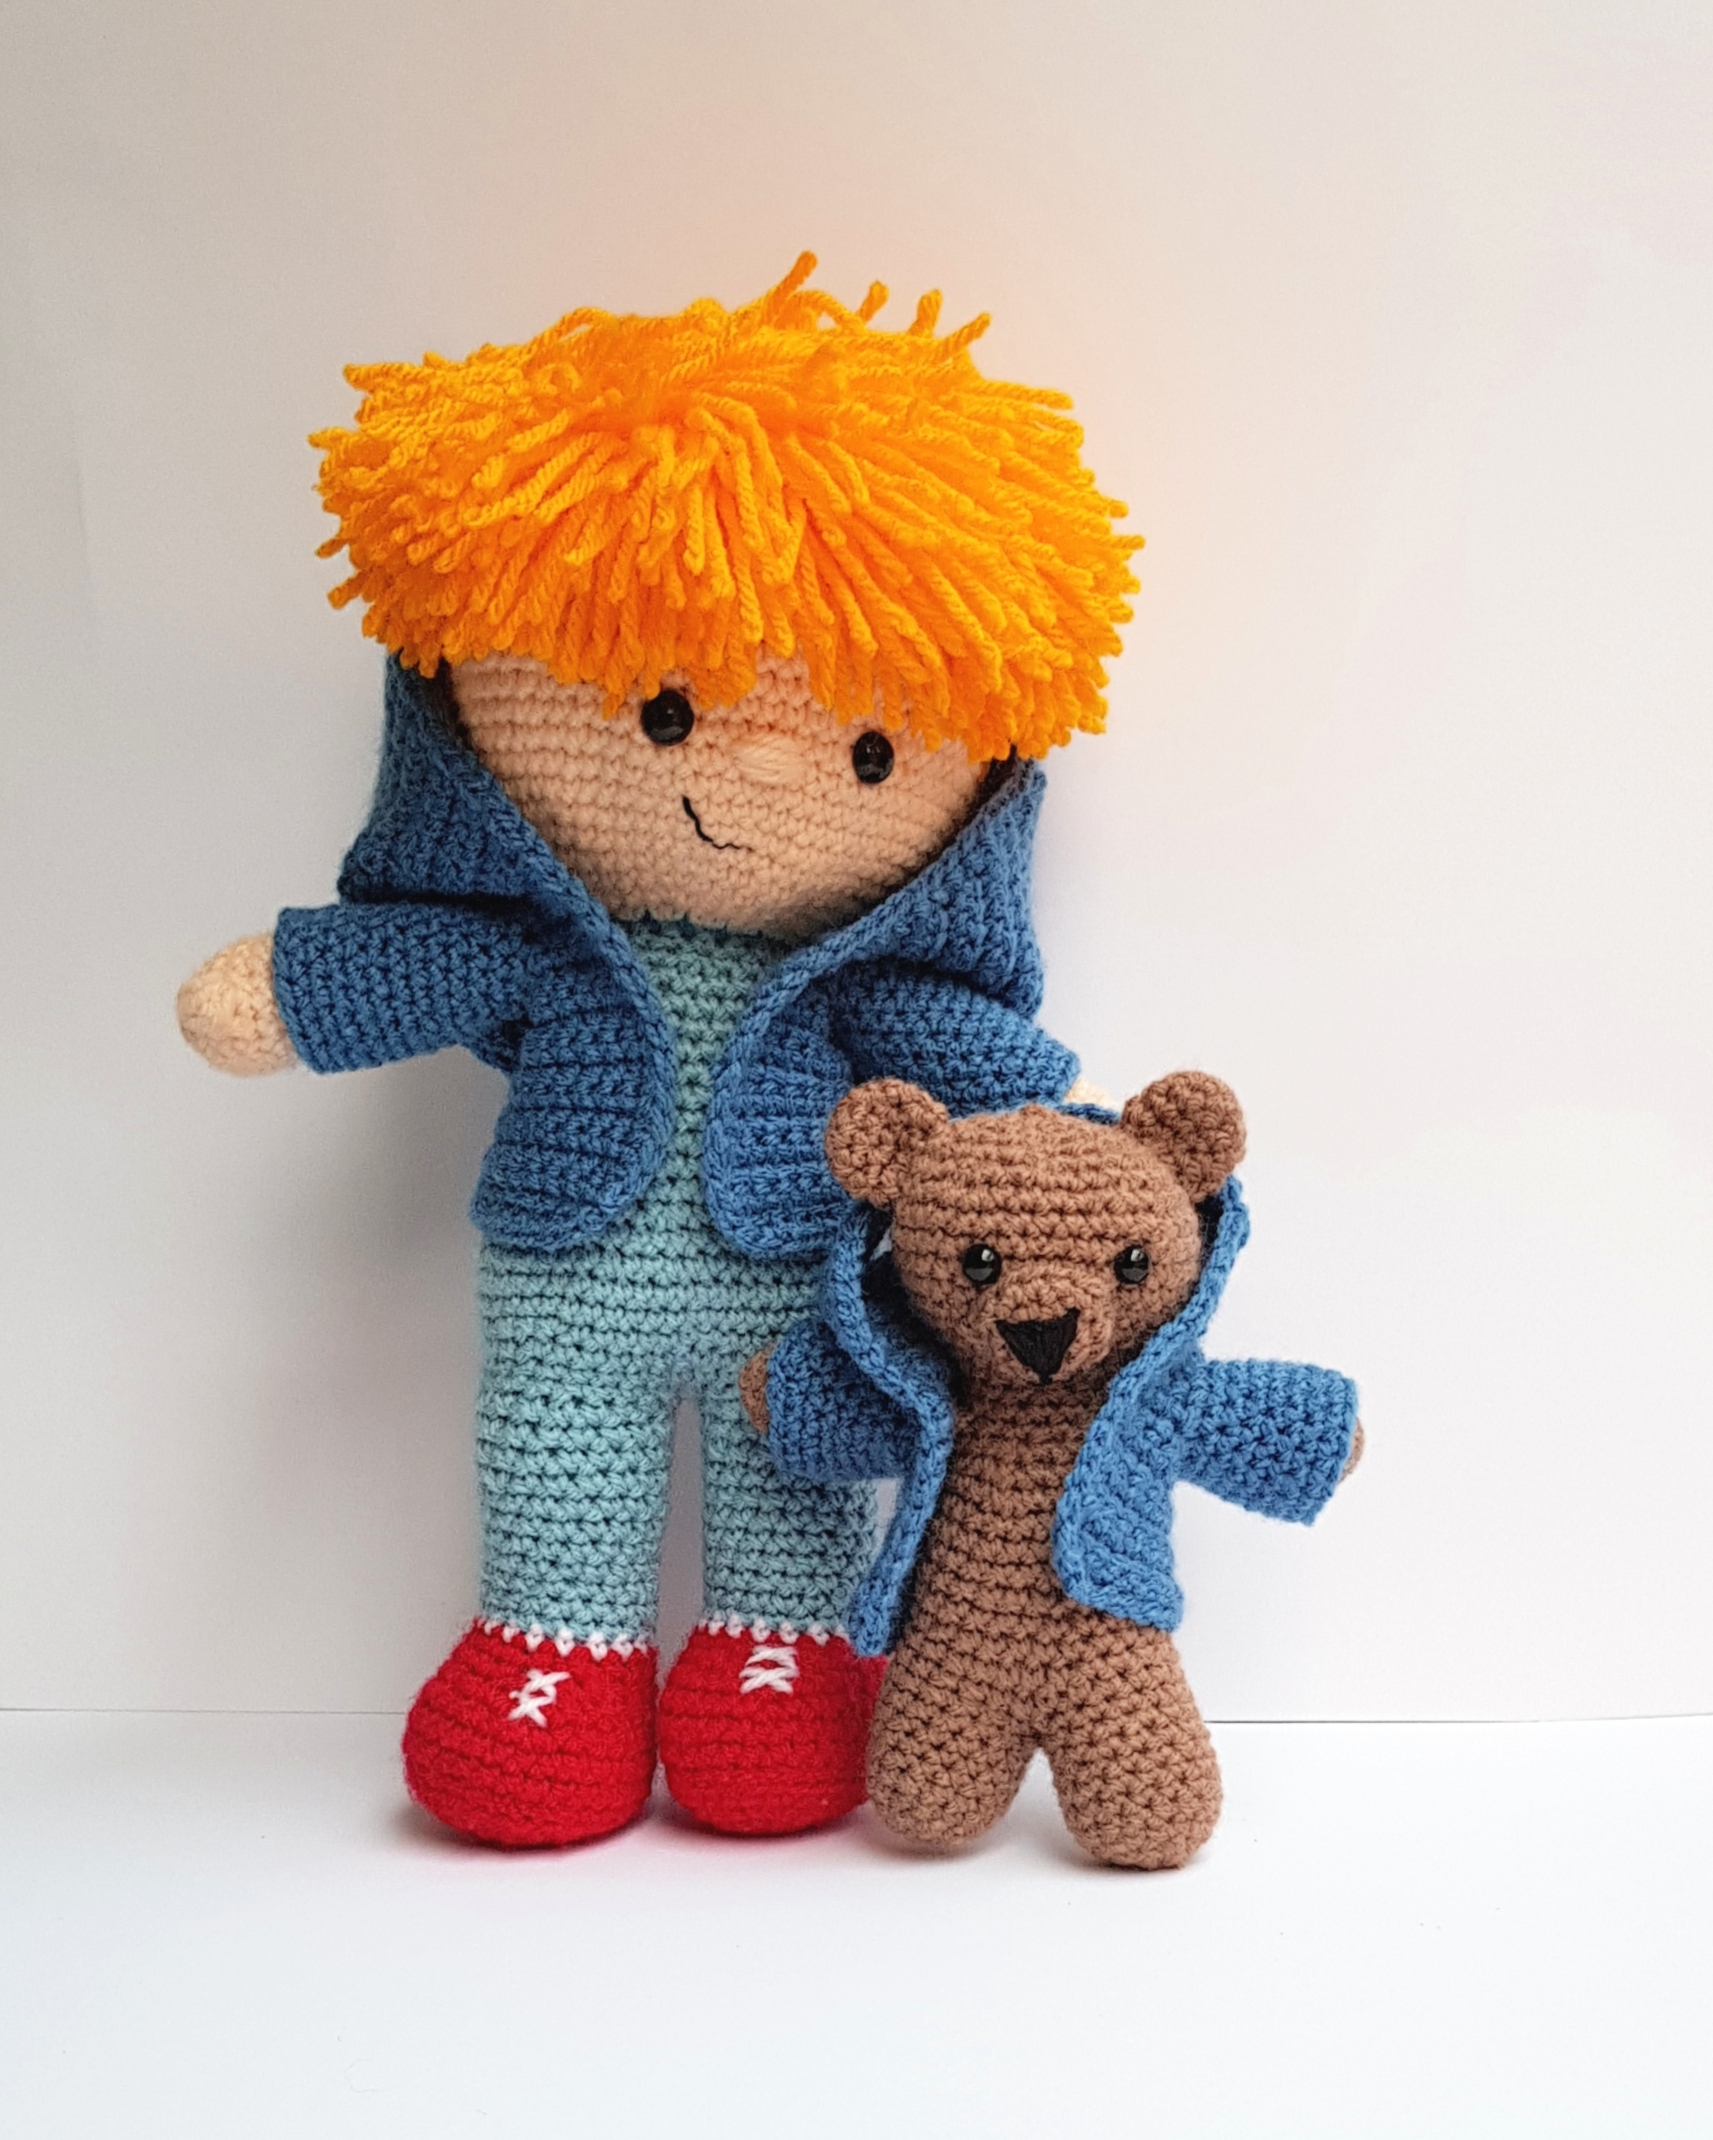 Bob and Bear Adventures, Crochet kits, The Crochet Craft Co